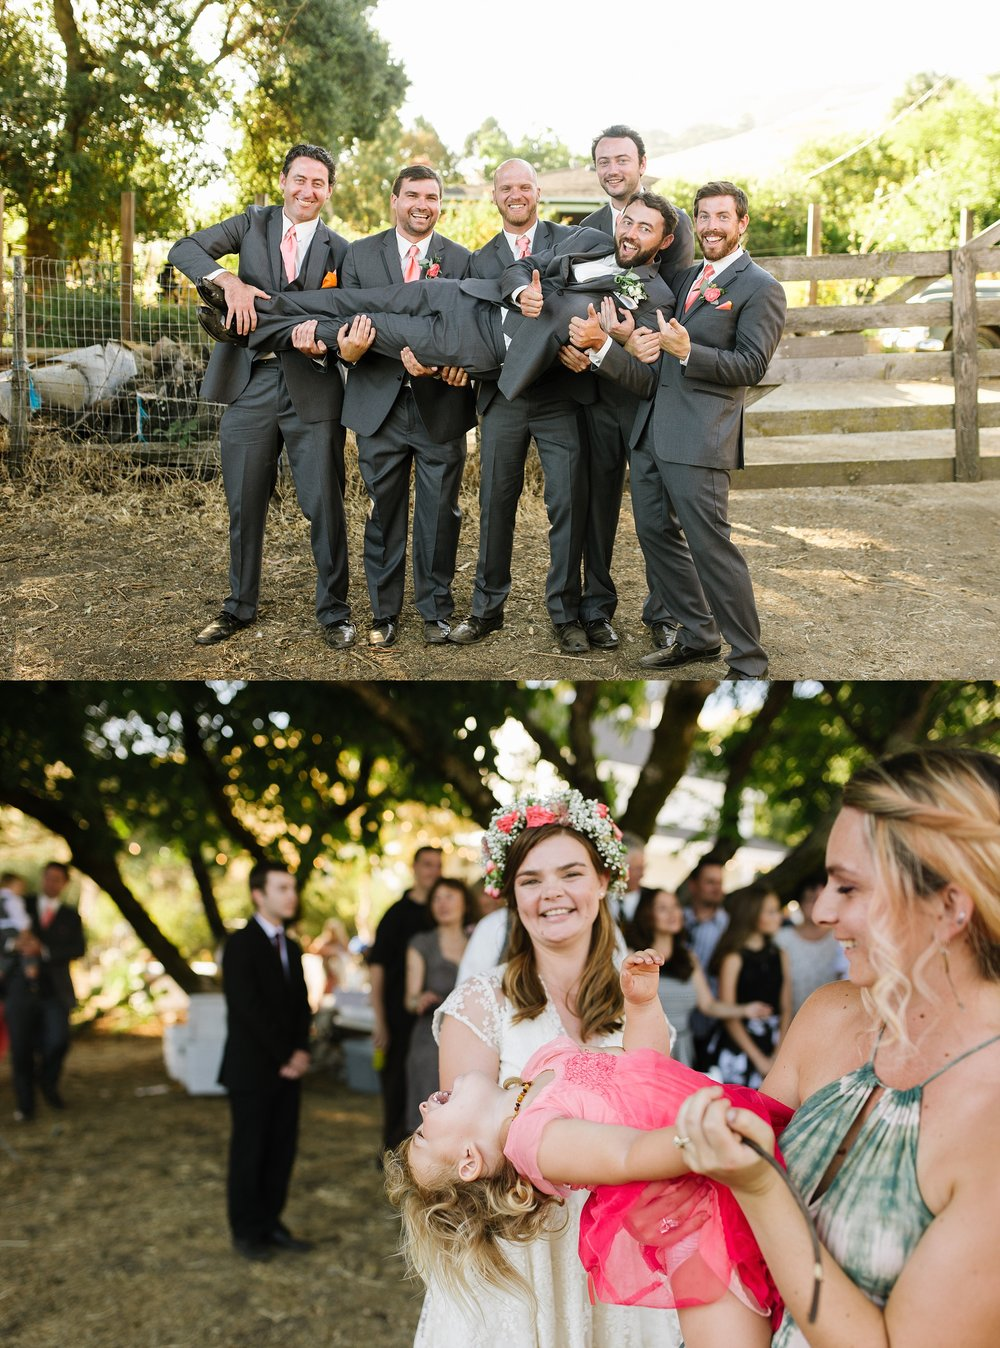 fairfax_ranch_wedding_chelsea_dier_photography_0032.jpg